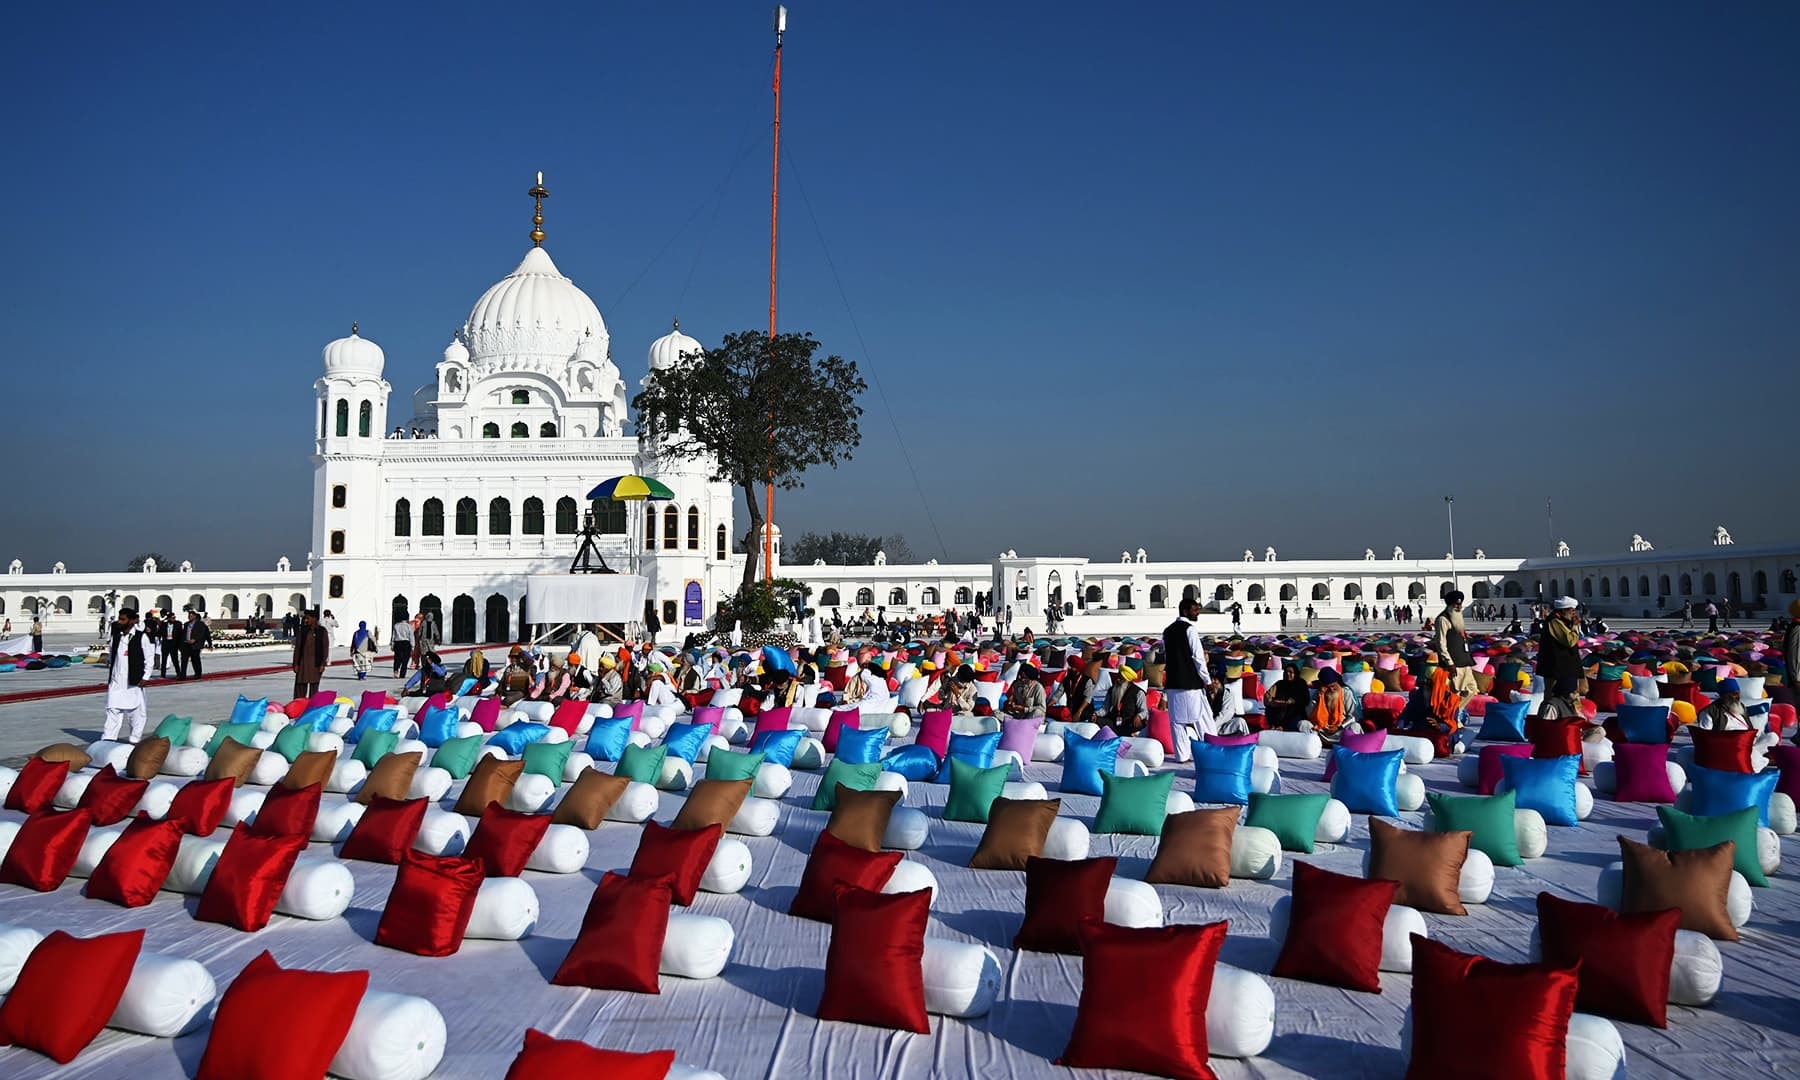 Sitting places with pillows are set out for Sikh pilgrims to attend a ceremomy for the inauguration of the Shrine of Baba Guru Nanak Dev at Gurdwara Darbar Sahib in Kartarpur, Pakistan, on Saturday. — AFP